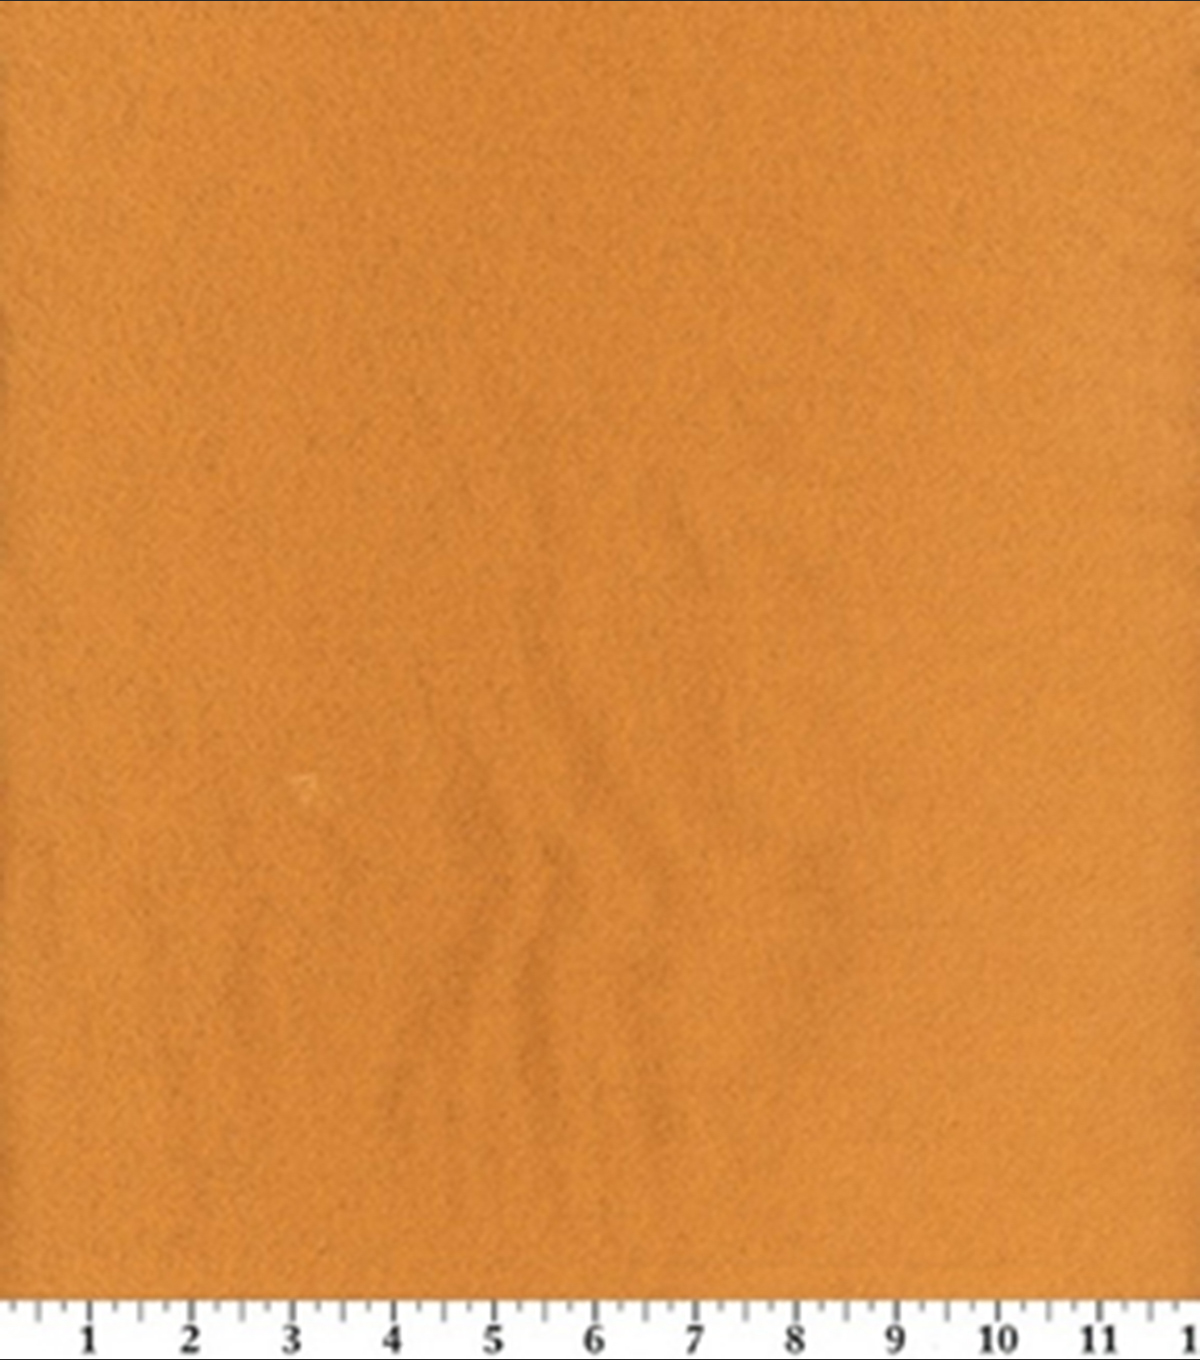 2 Yard Pre-Cut Craft Felt Fabric Remnant-Tan